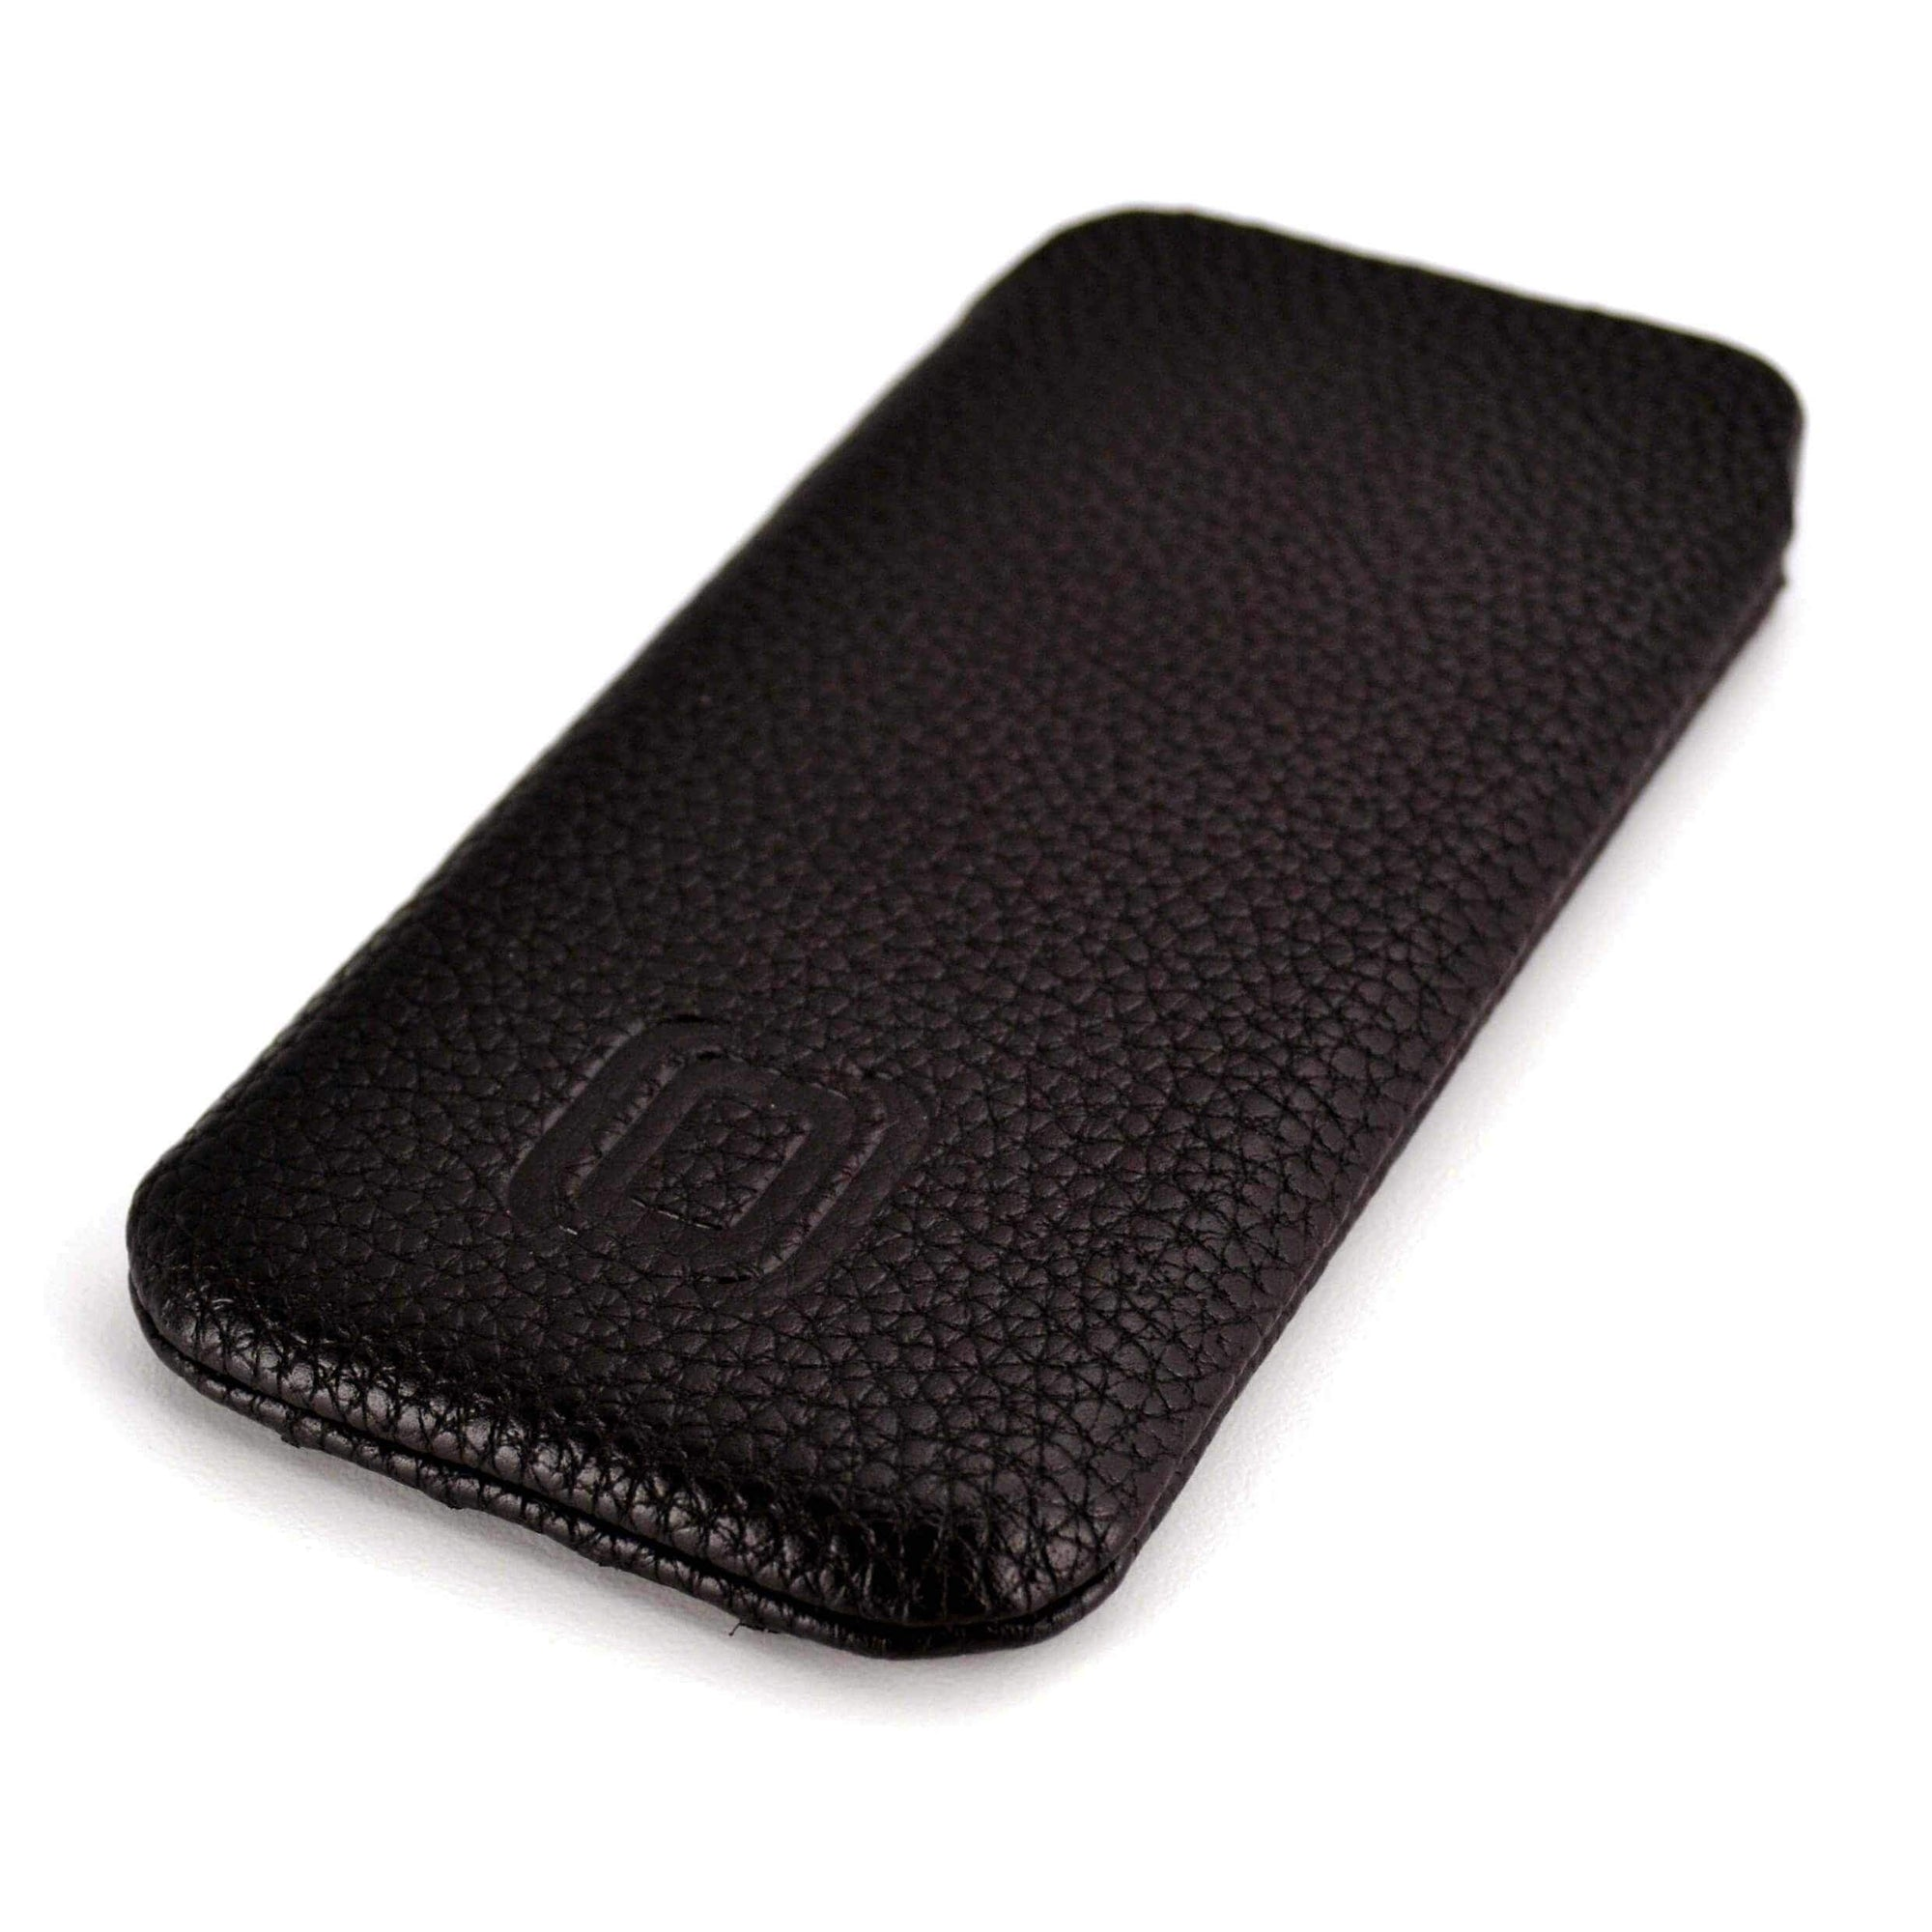 Ultra Slim Synthetic Leather Sleeve for Moto X - Dark Brown Misc. Sleeve Dockem